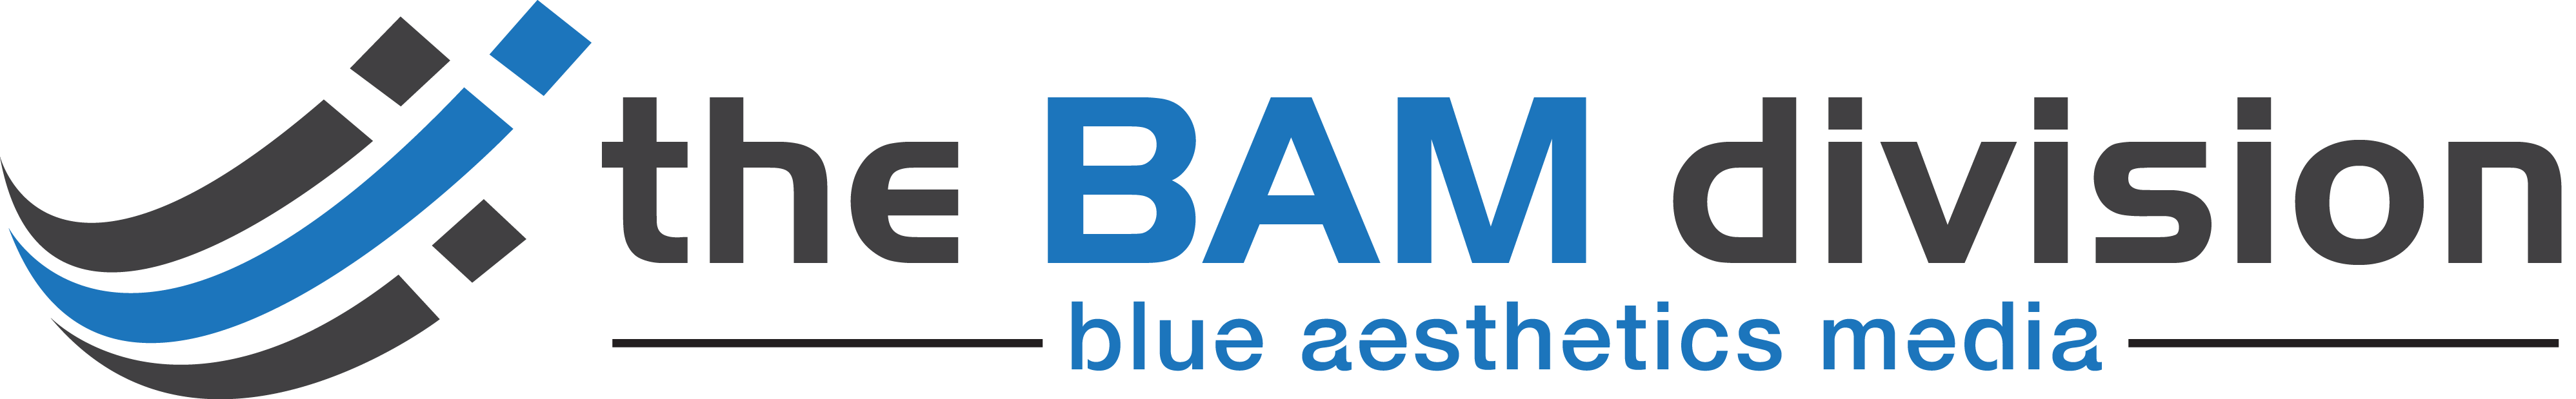 the bam division | blue aesthetics media | tx-based digital marketing